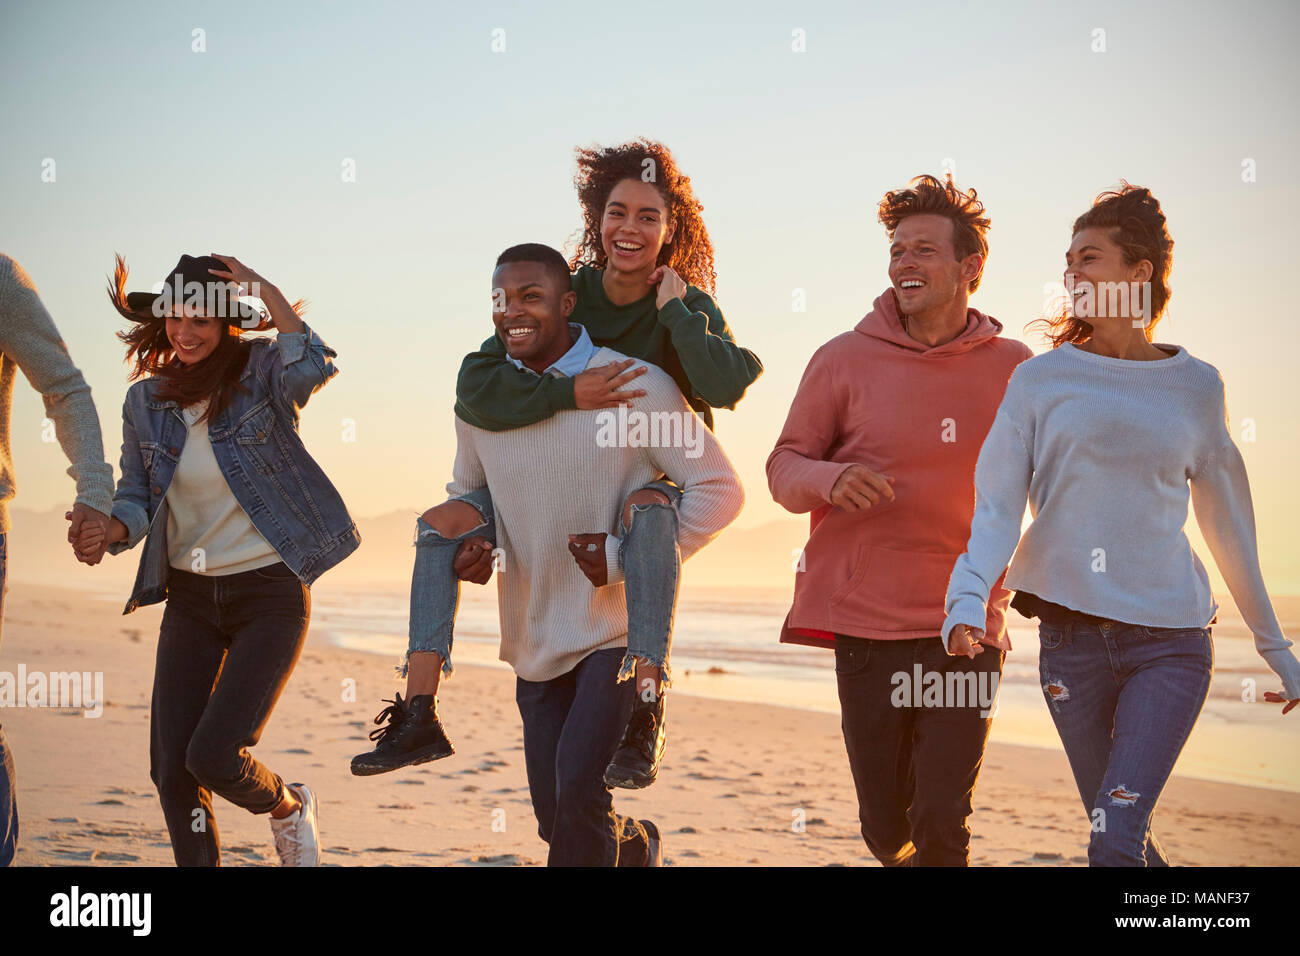 Group Of Friends Having Fun Running Along Winter Beach Together - Stock Image